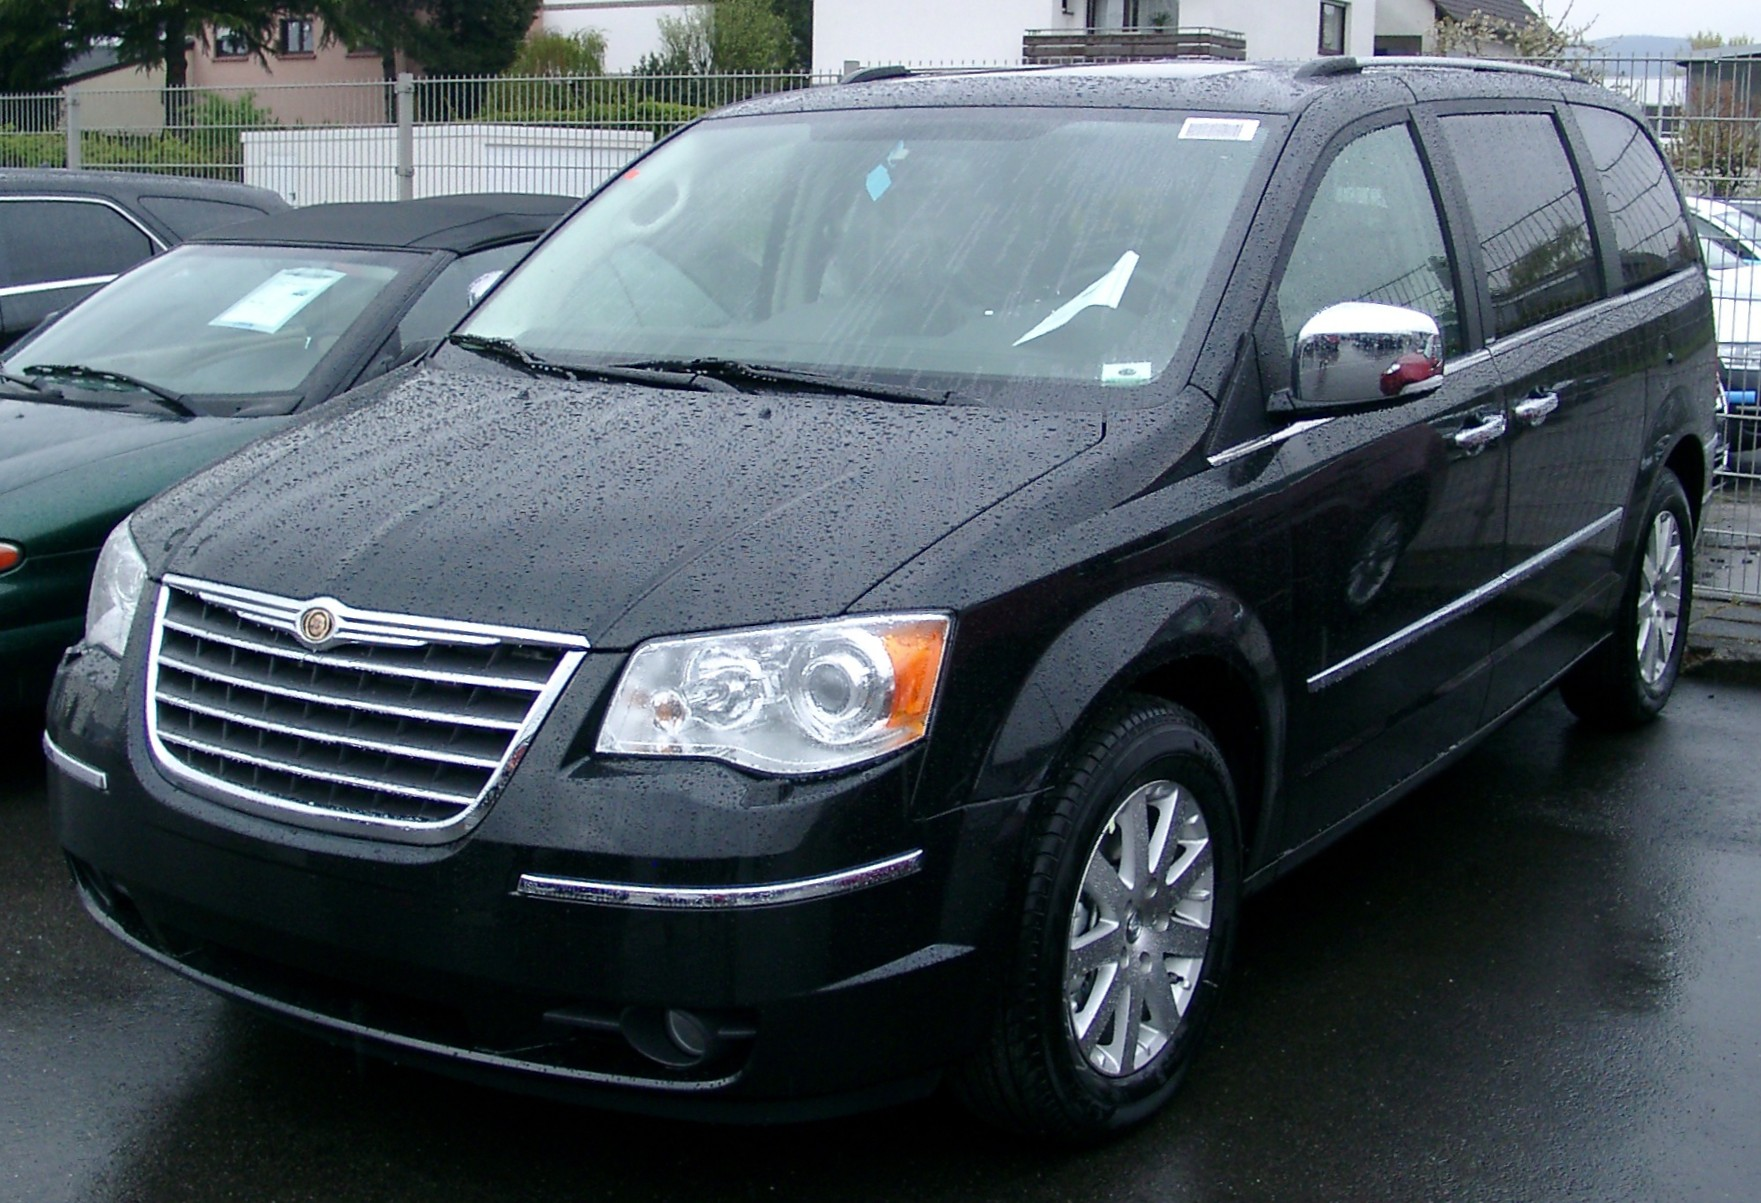 chrysler voyager reviews chrysler voyager car reviews. Black Bedroom Furniture Sets. Home Design Ideas